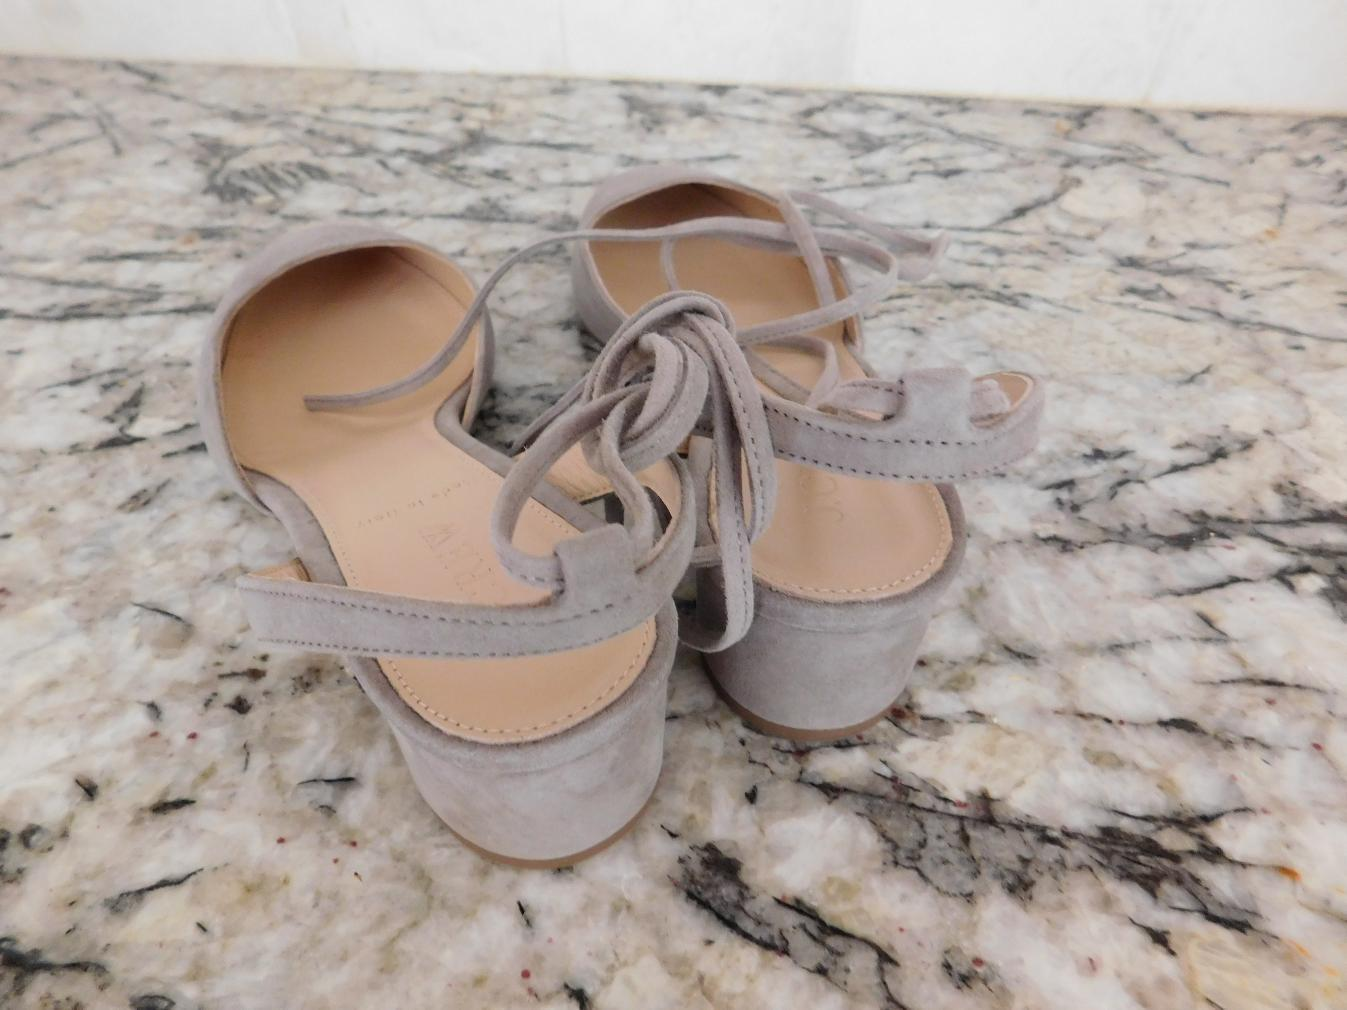 JCrew-178-Ankle-Wrap-Slingback-Heels-in-Suede-G4095-8-5-Antique-Dove-Grey-NEW thumbnail 3